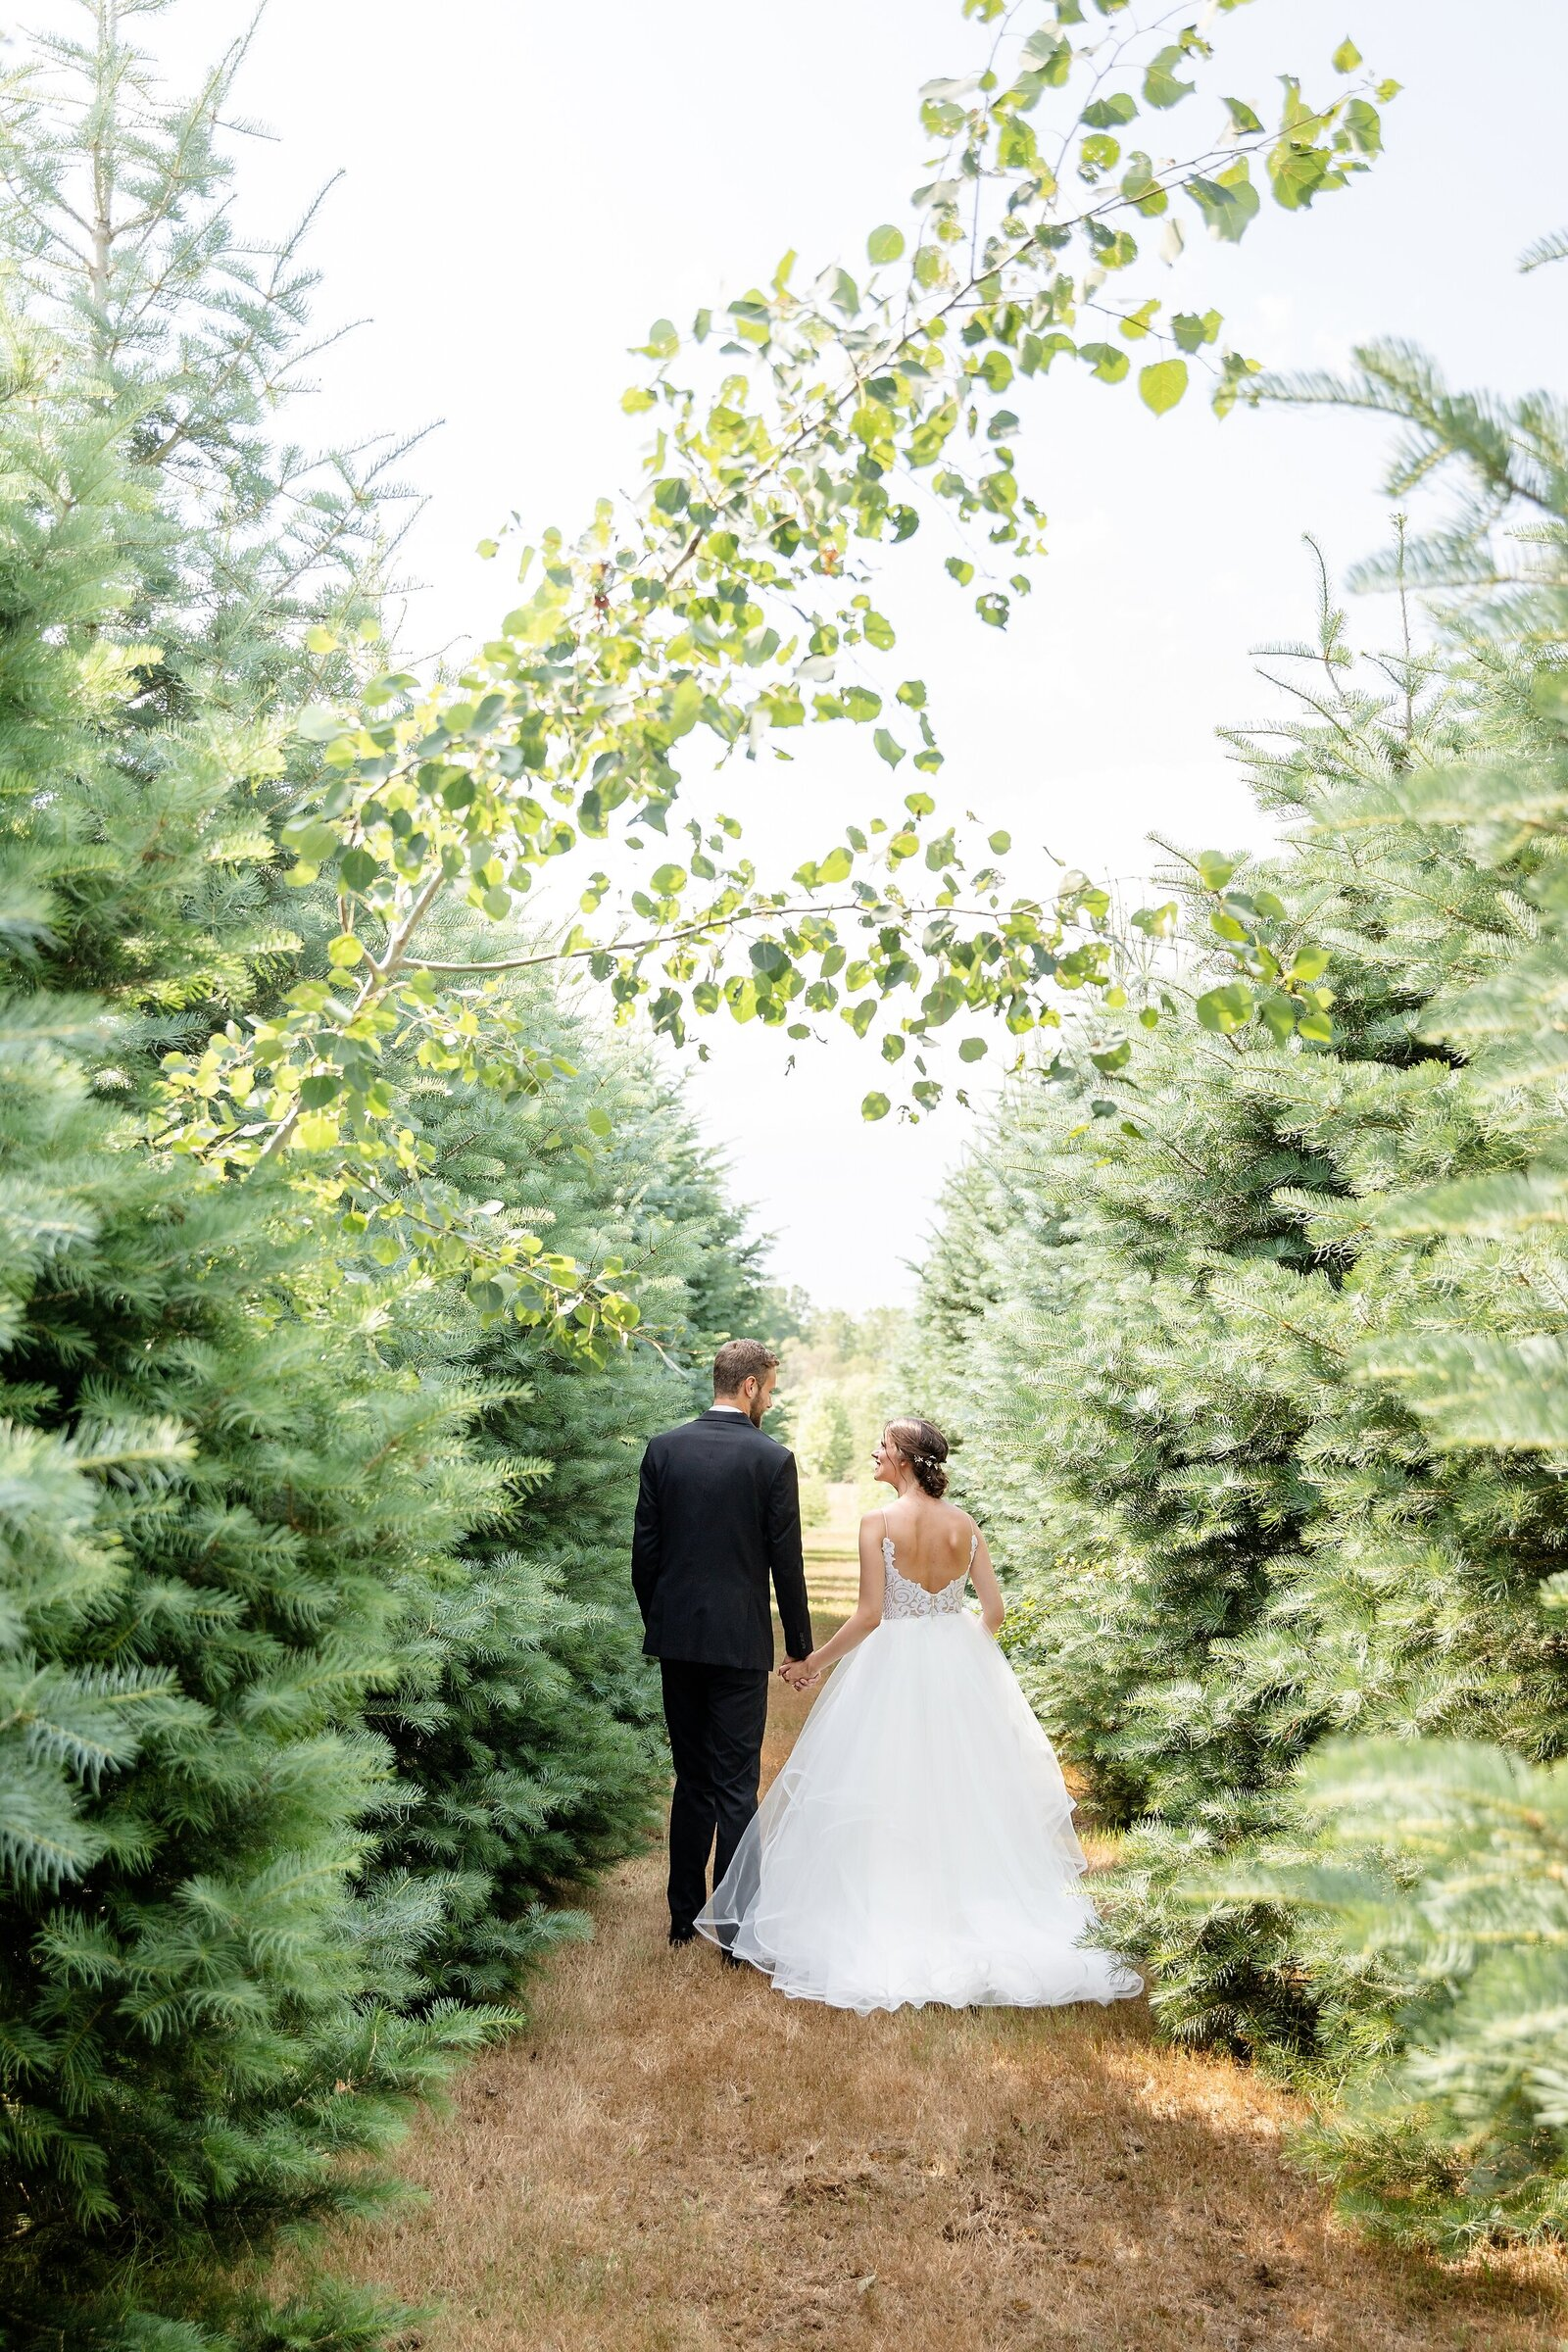 Future-newlyweds-walk-holding-hands-looking-into-each-others-eyes-between-the-beautiful-pine-trees-at-arrowwood-farms